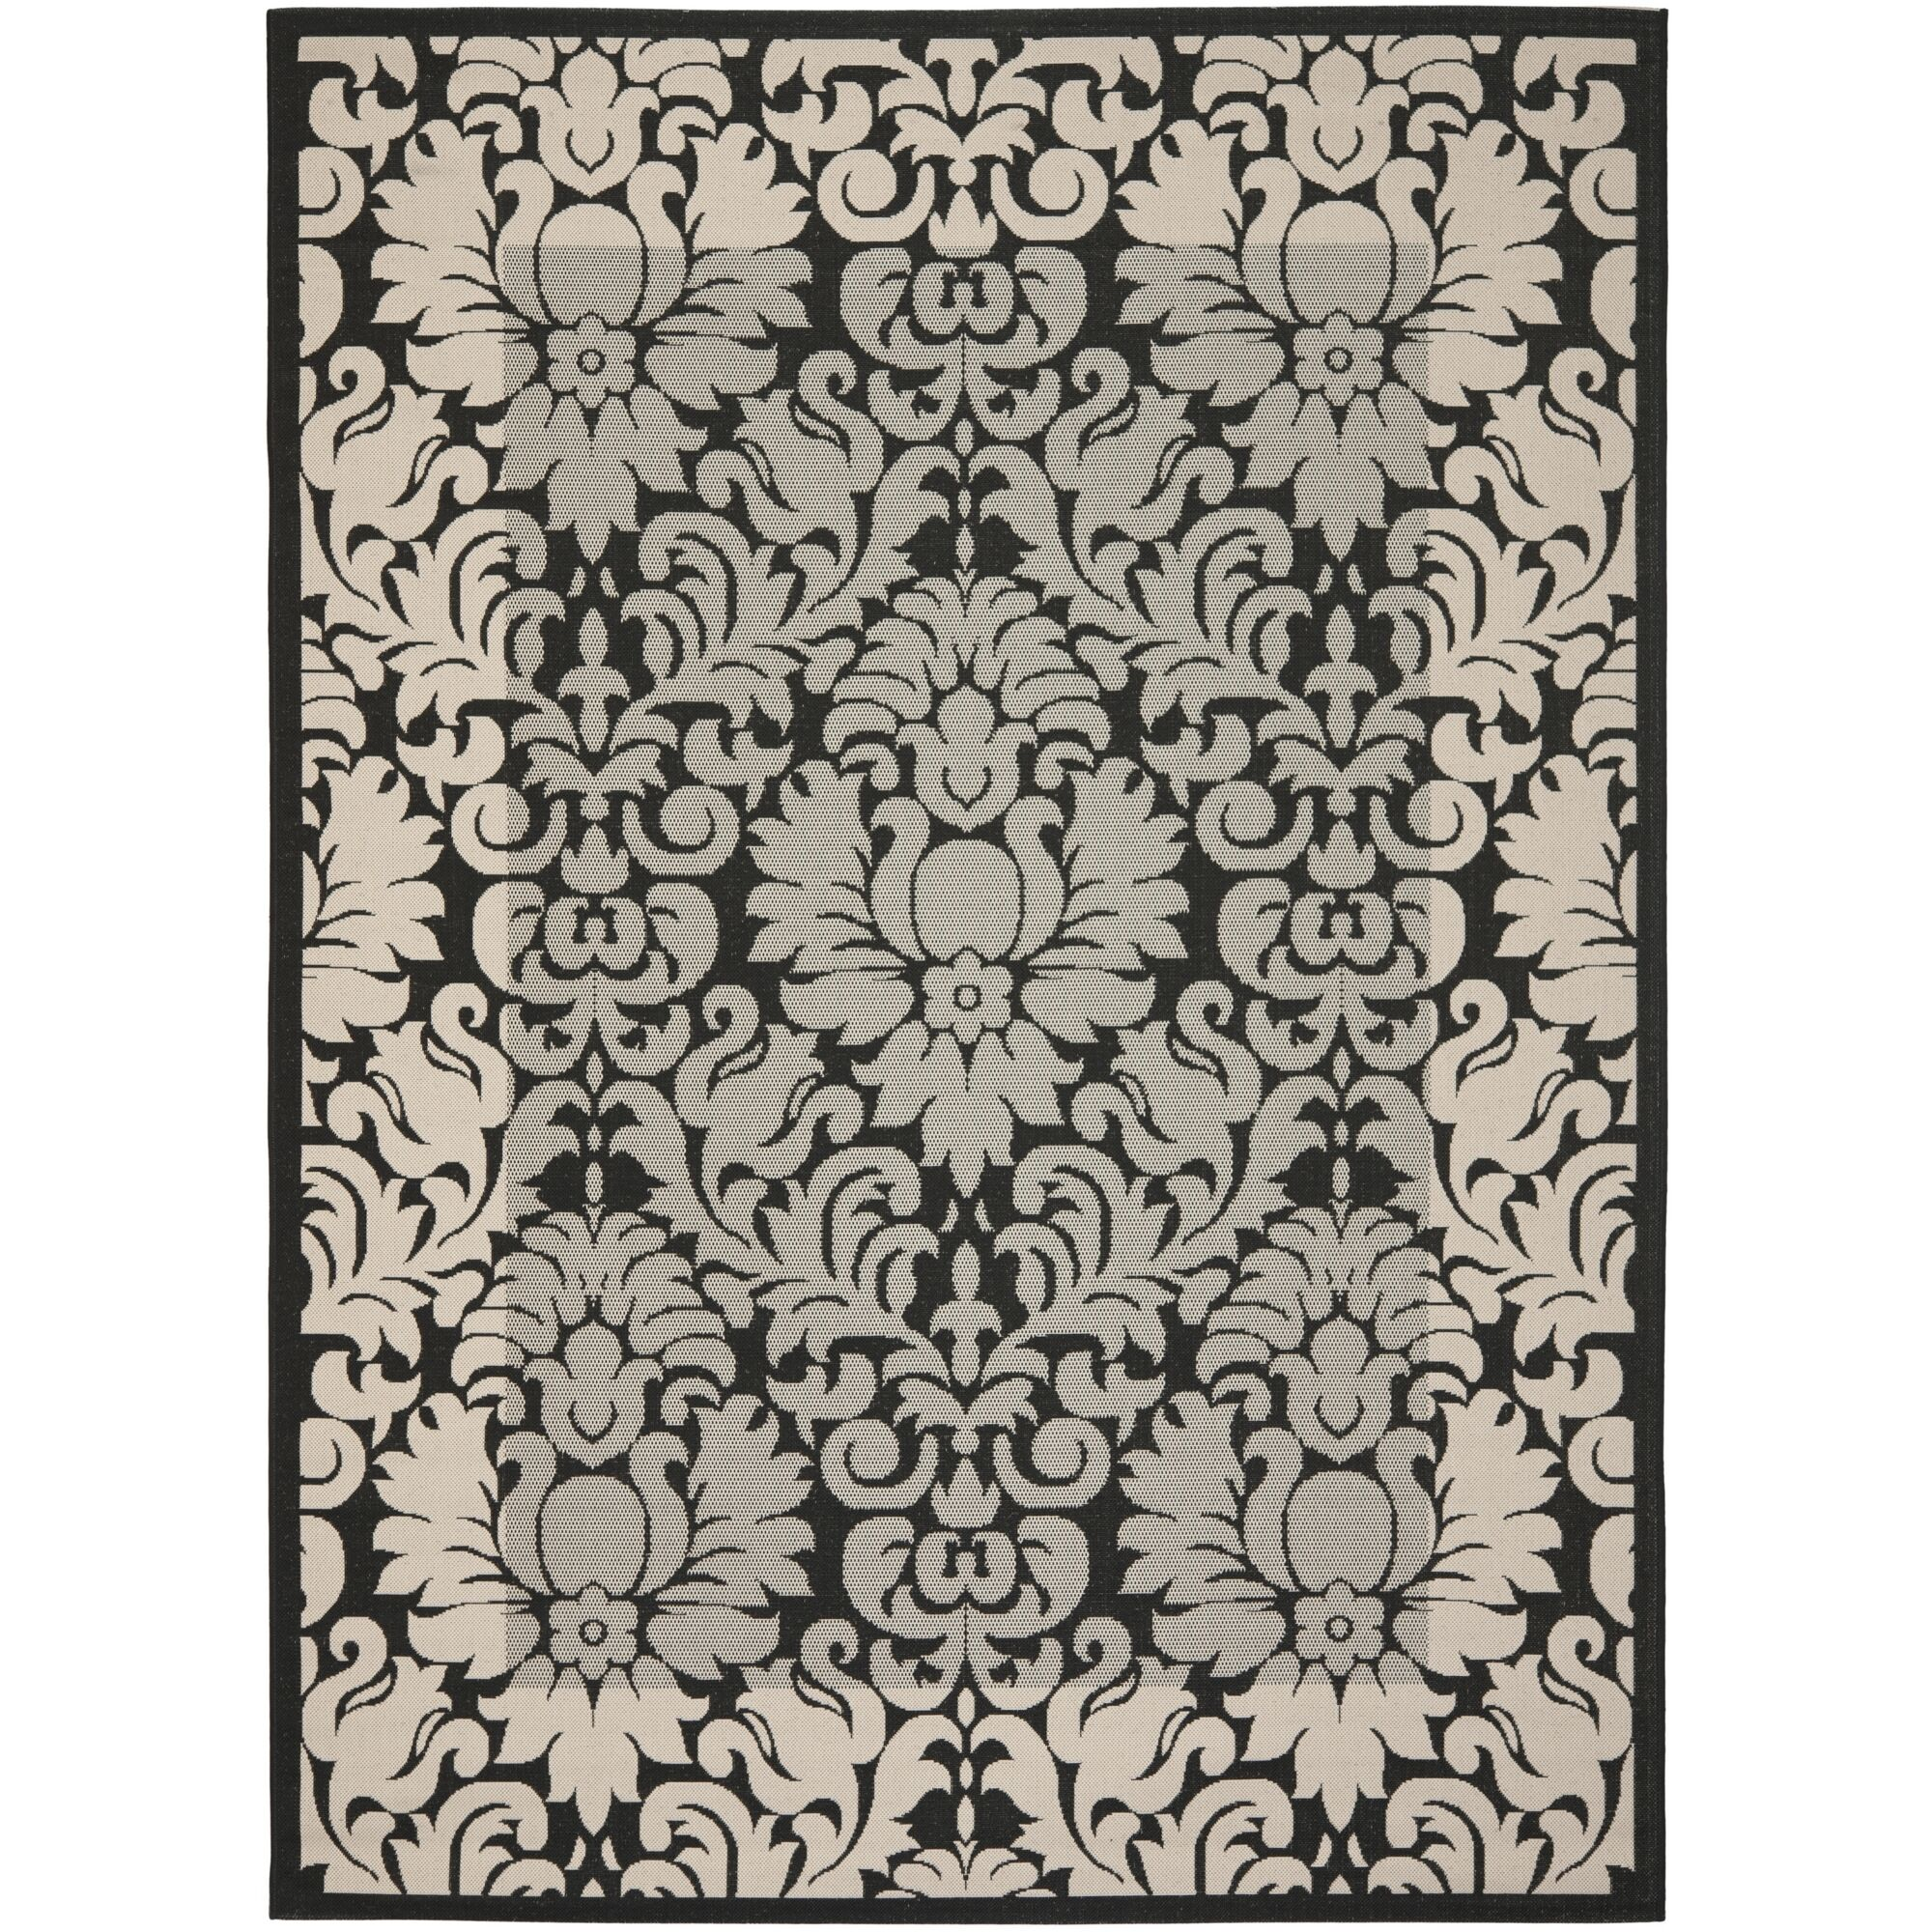 Short Black / Sand Outdoor Area Rug Rug Size: Rectangle 2' x 3'7